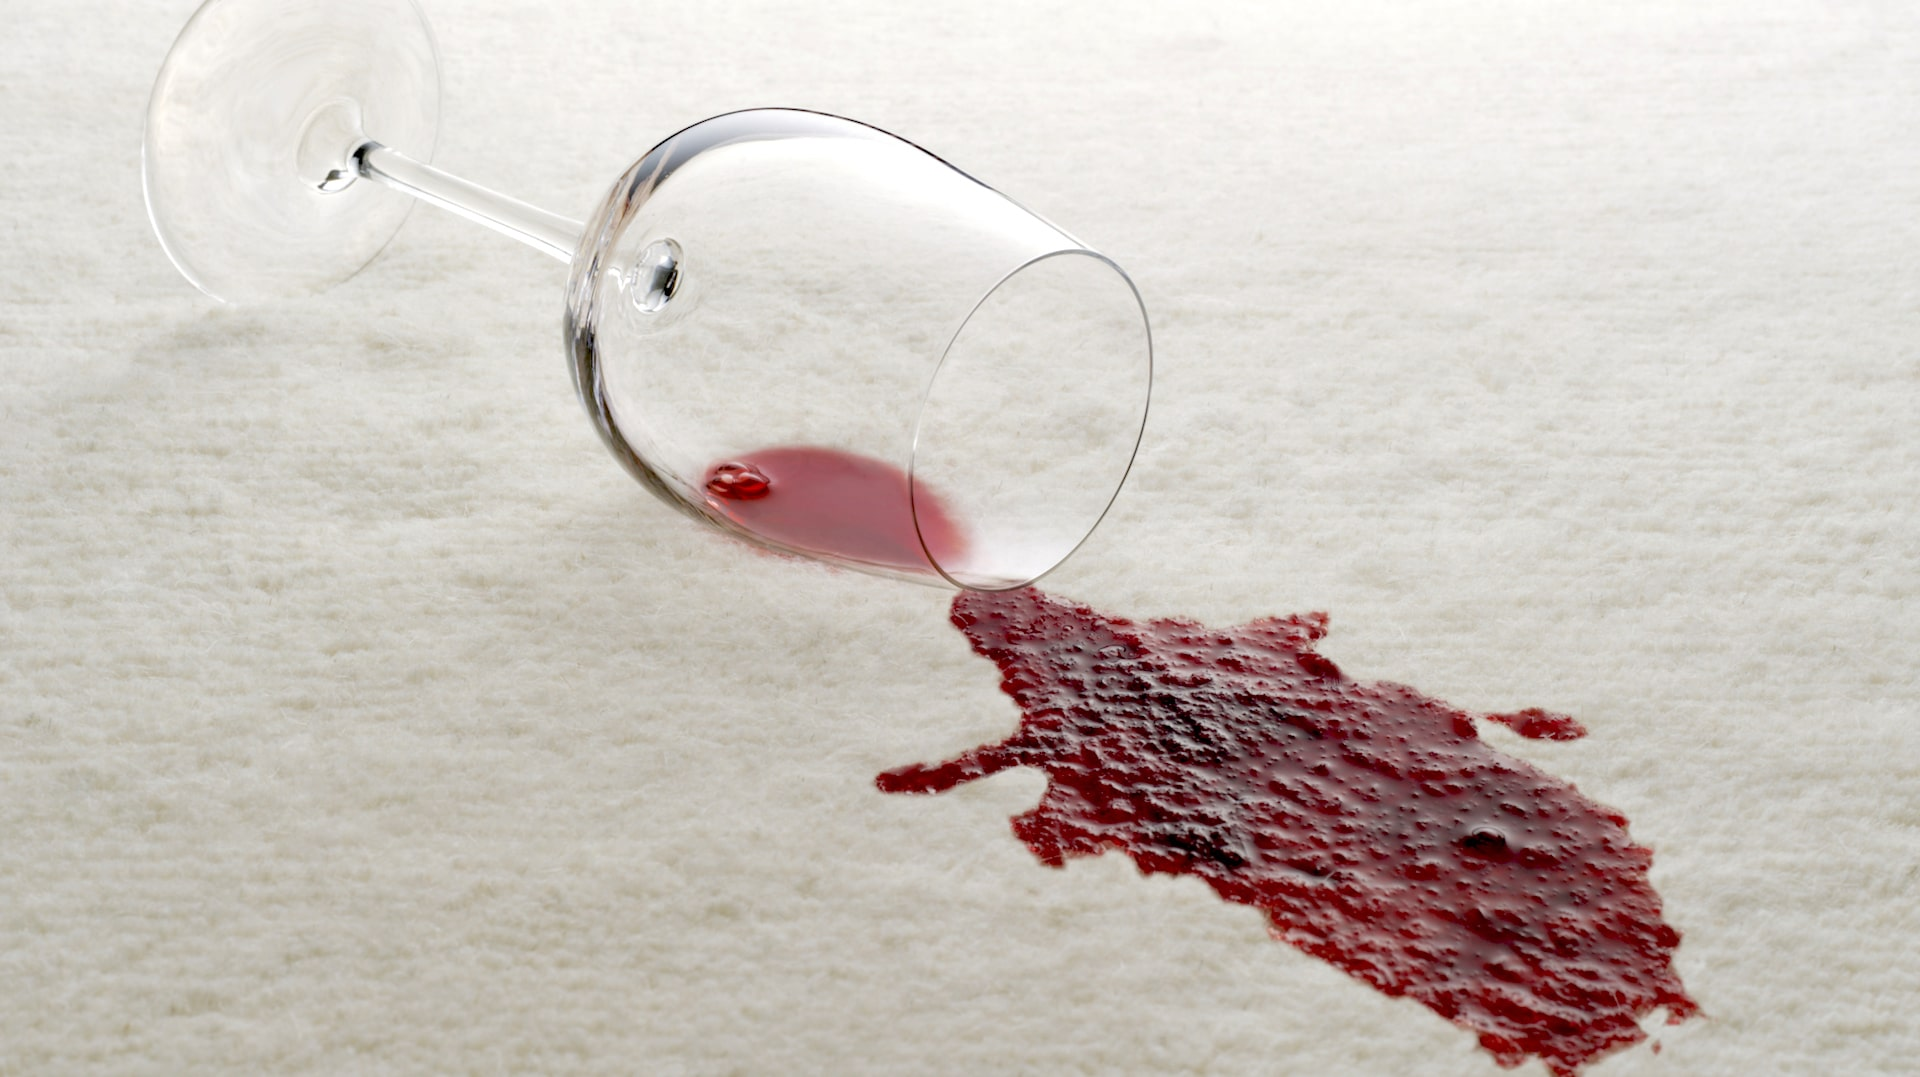 How to remove wine stains evergreen carpt care - Remove carpet stains ...